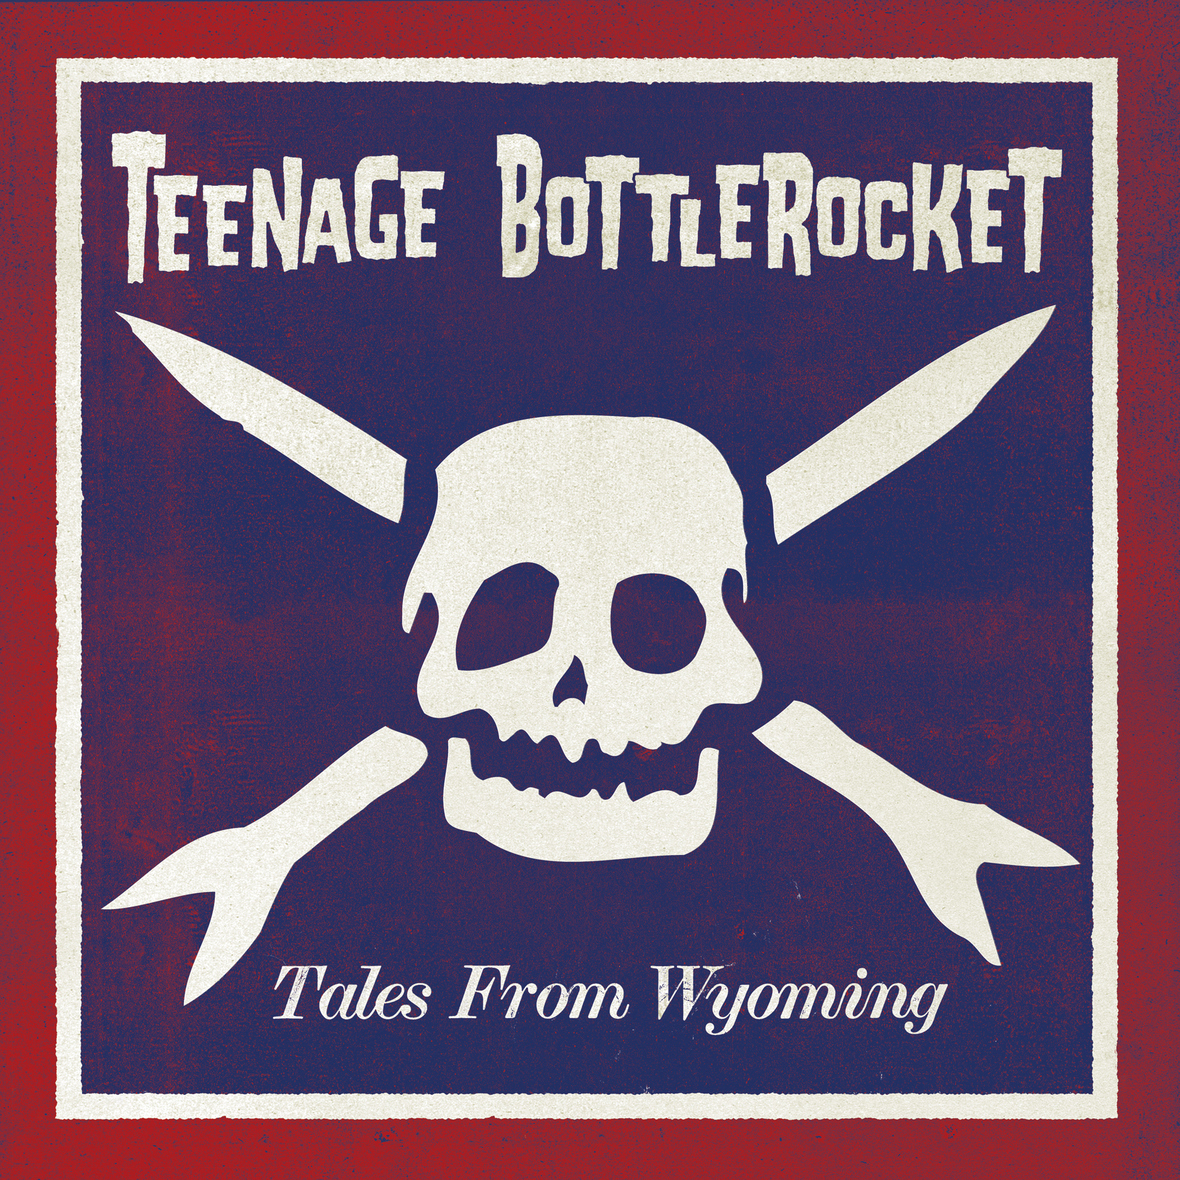 teenage bottlerocket tales from wymoning cover use this